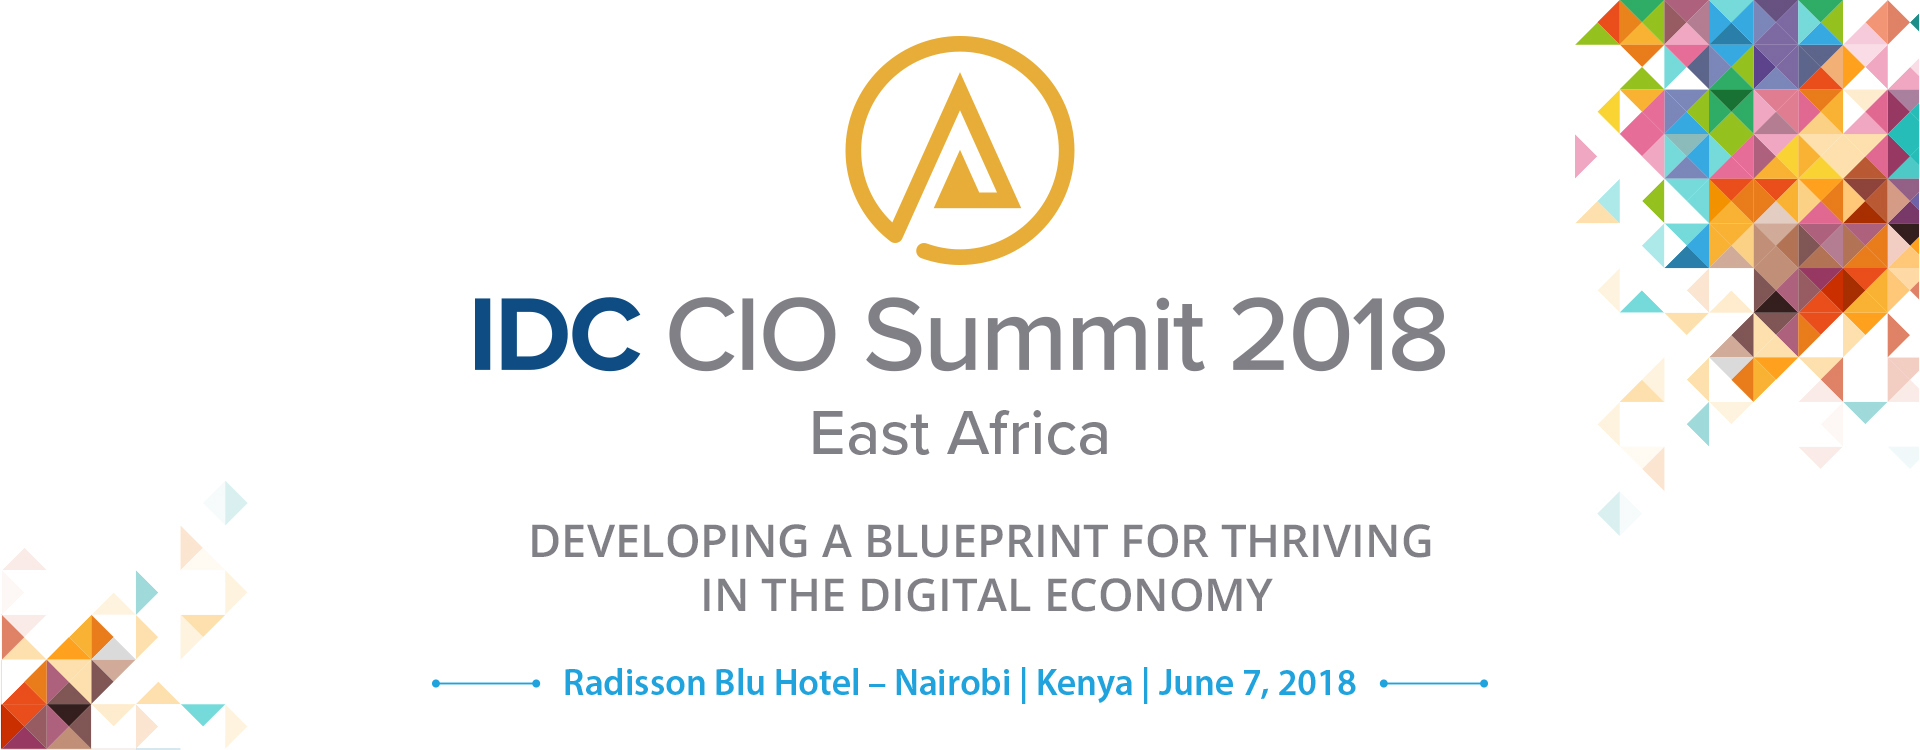 East africa idc cio summit 2018 idcs cio summit series has served as a pioneering platform for ict thought leadership in the middle east africa turkey region since 2008 and returns to malvernweather Gallery